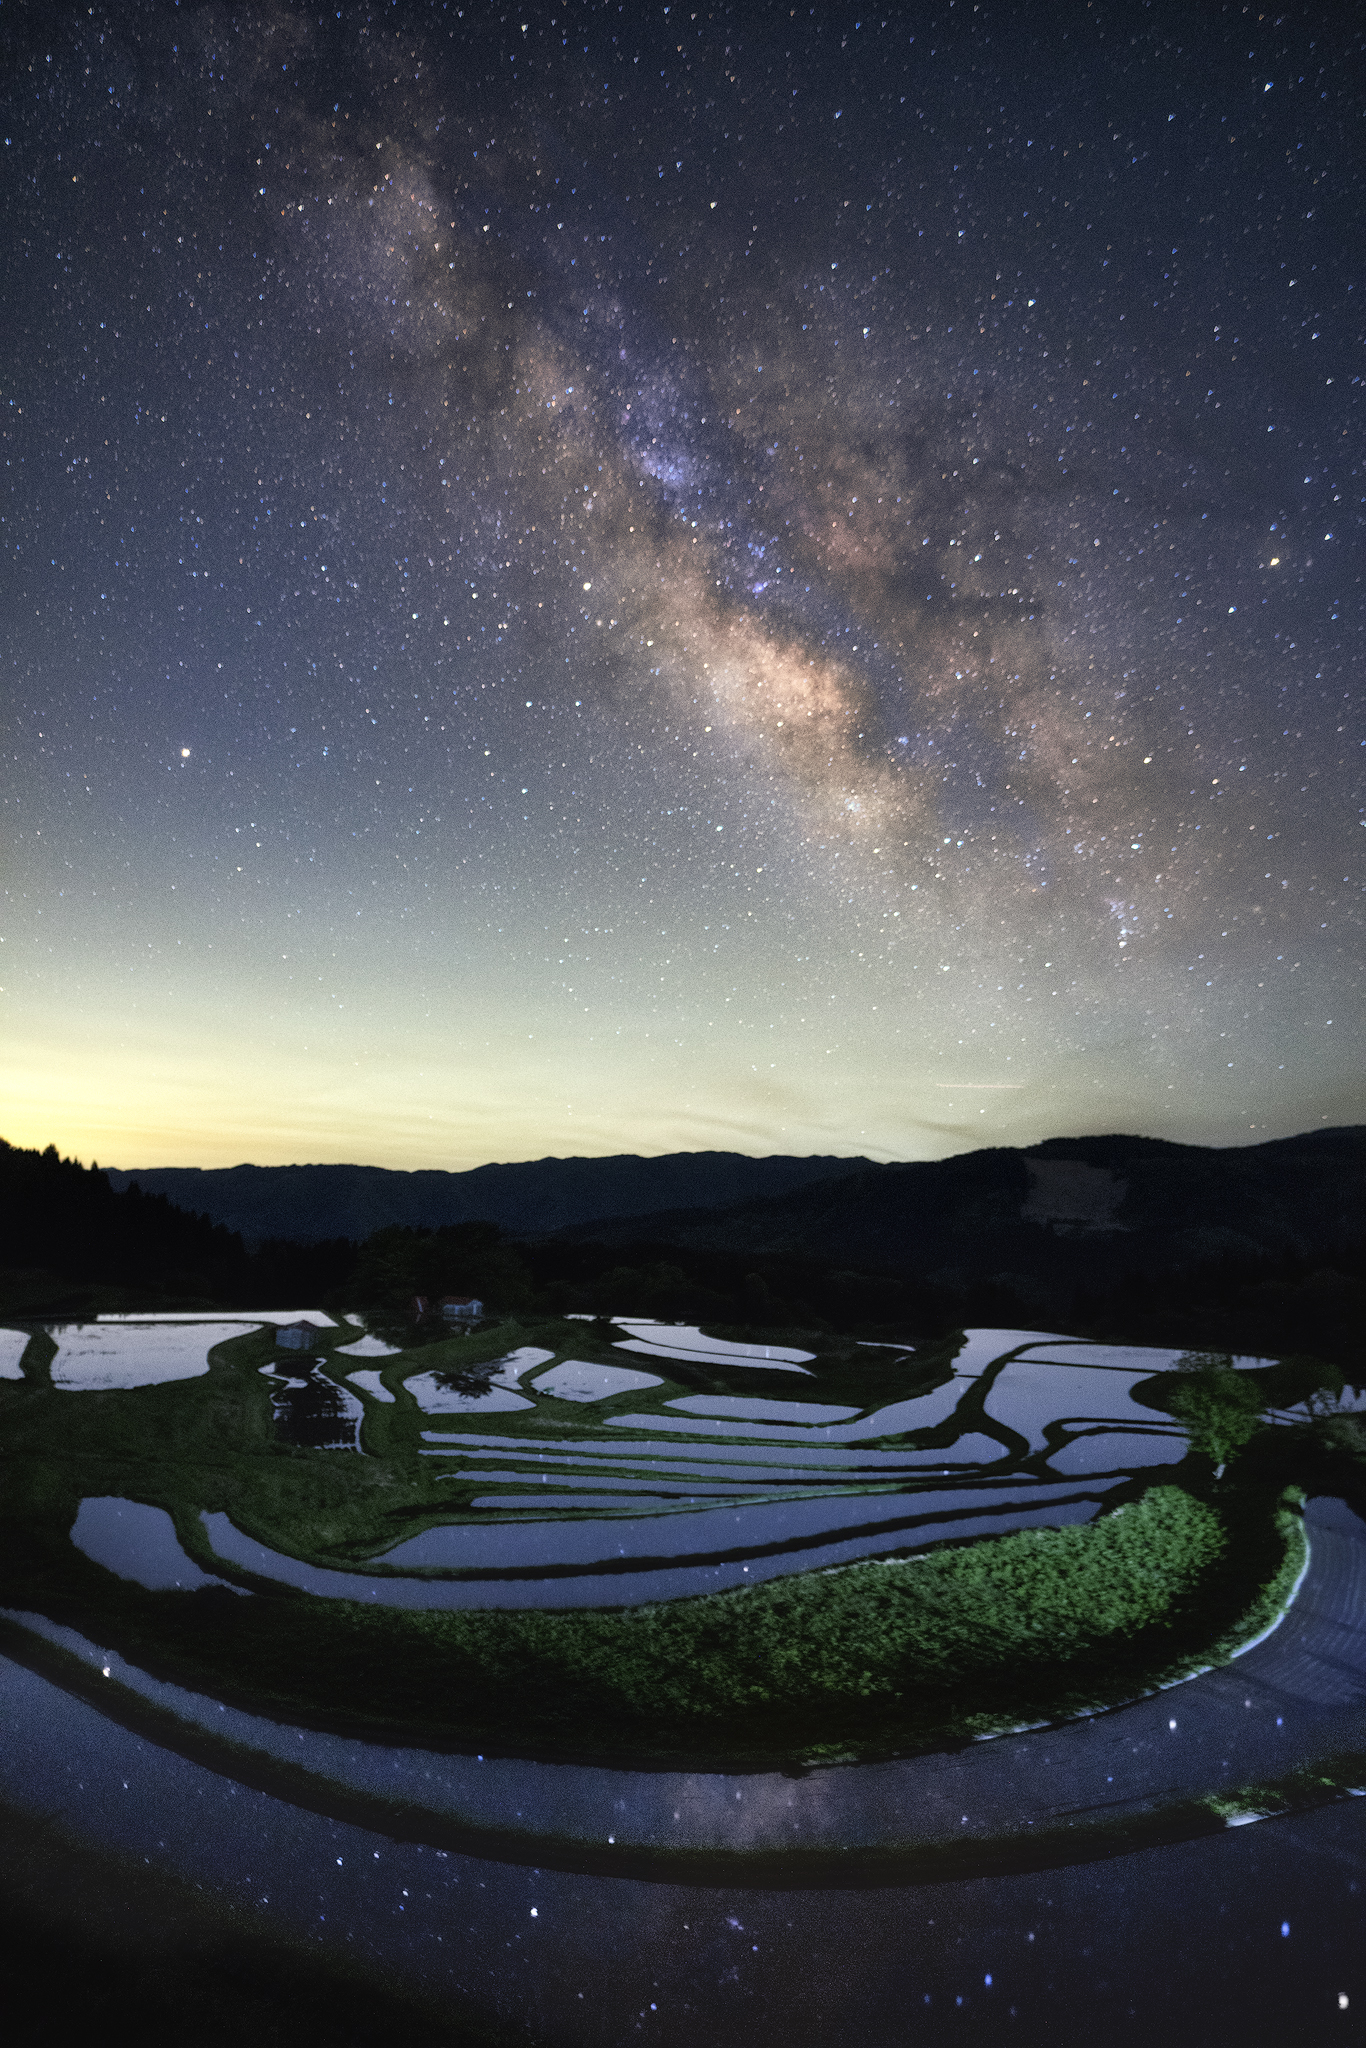 The Milky Way, Paddy Fields and Reflection